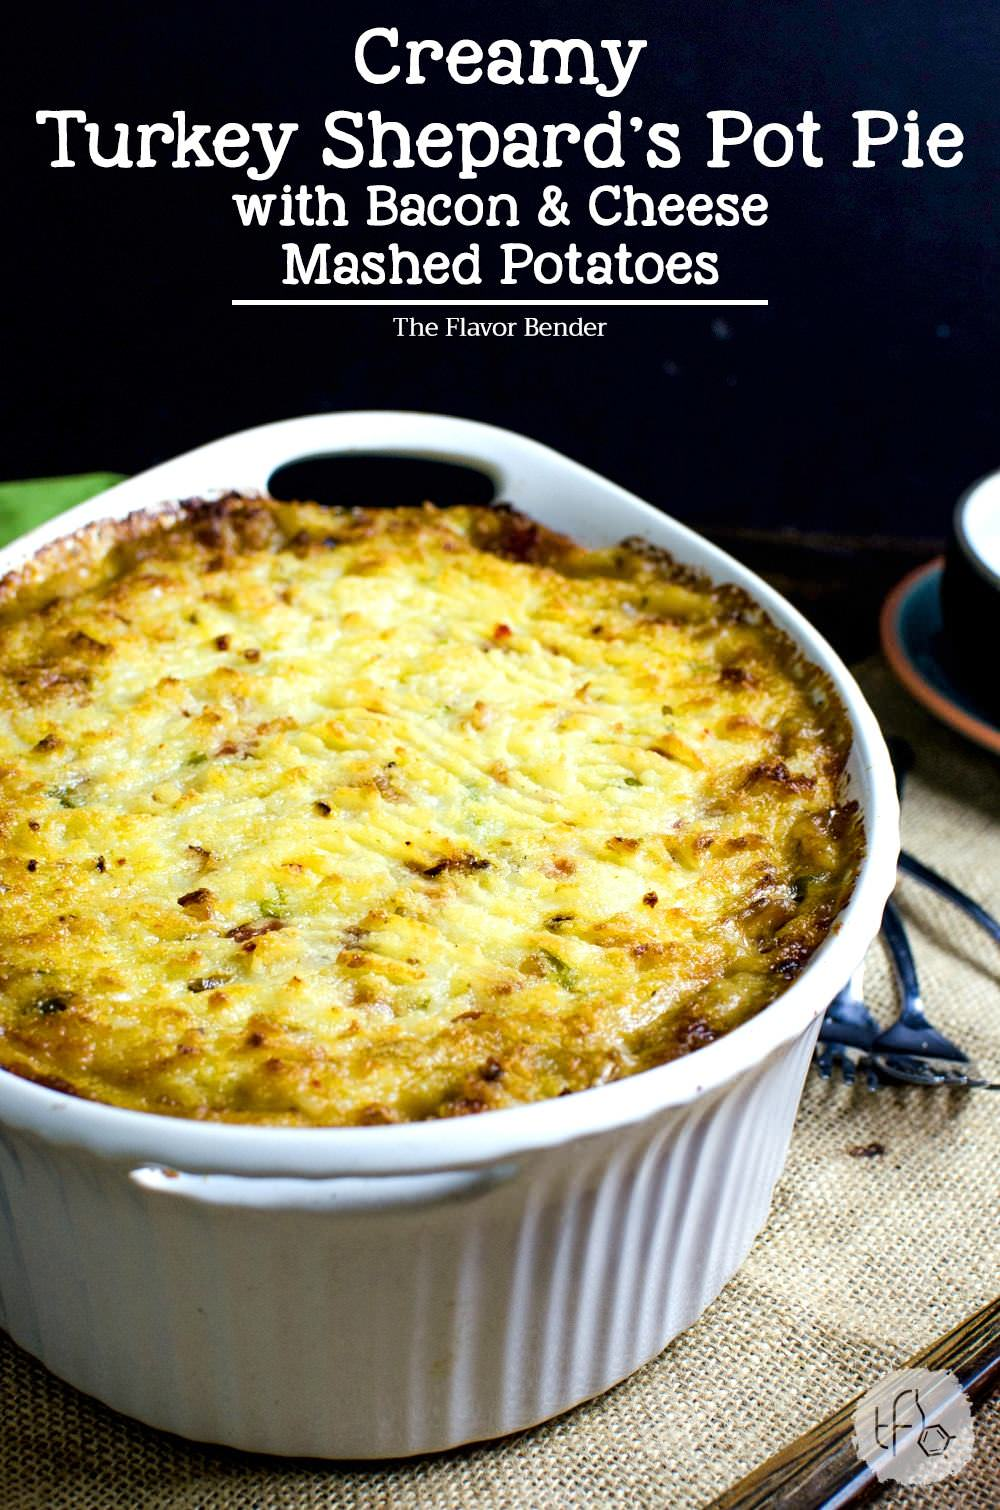 , bacon and creamy mashed potato, and then baked until the potatoes ...